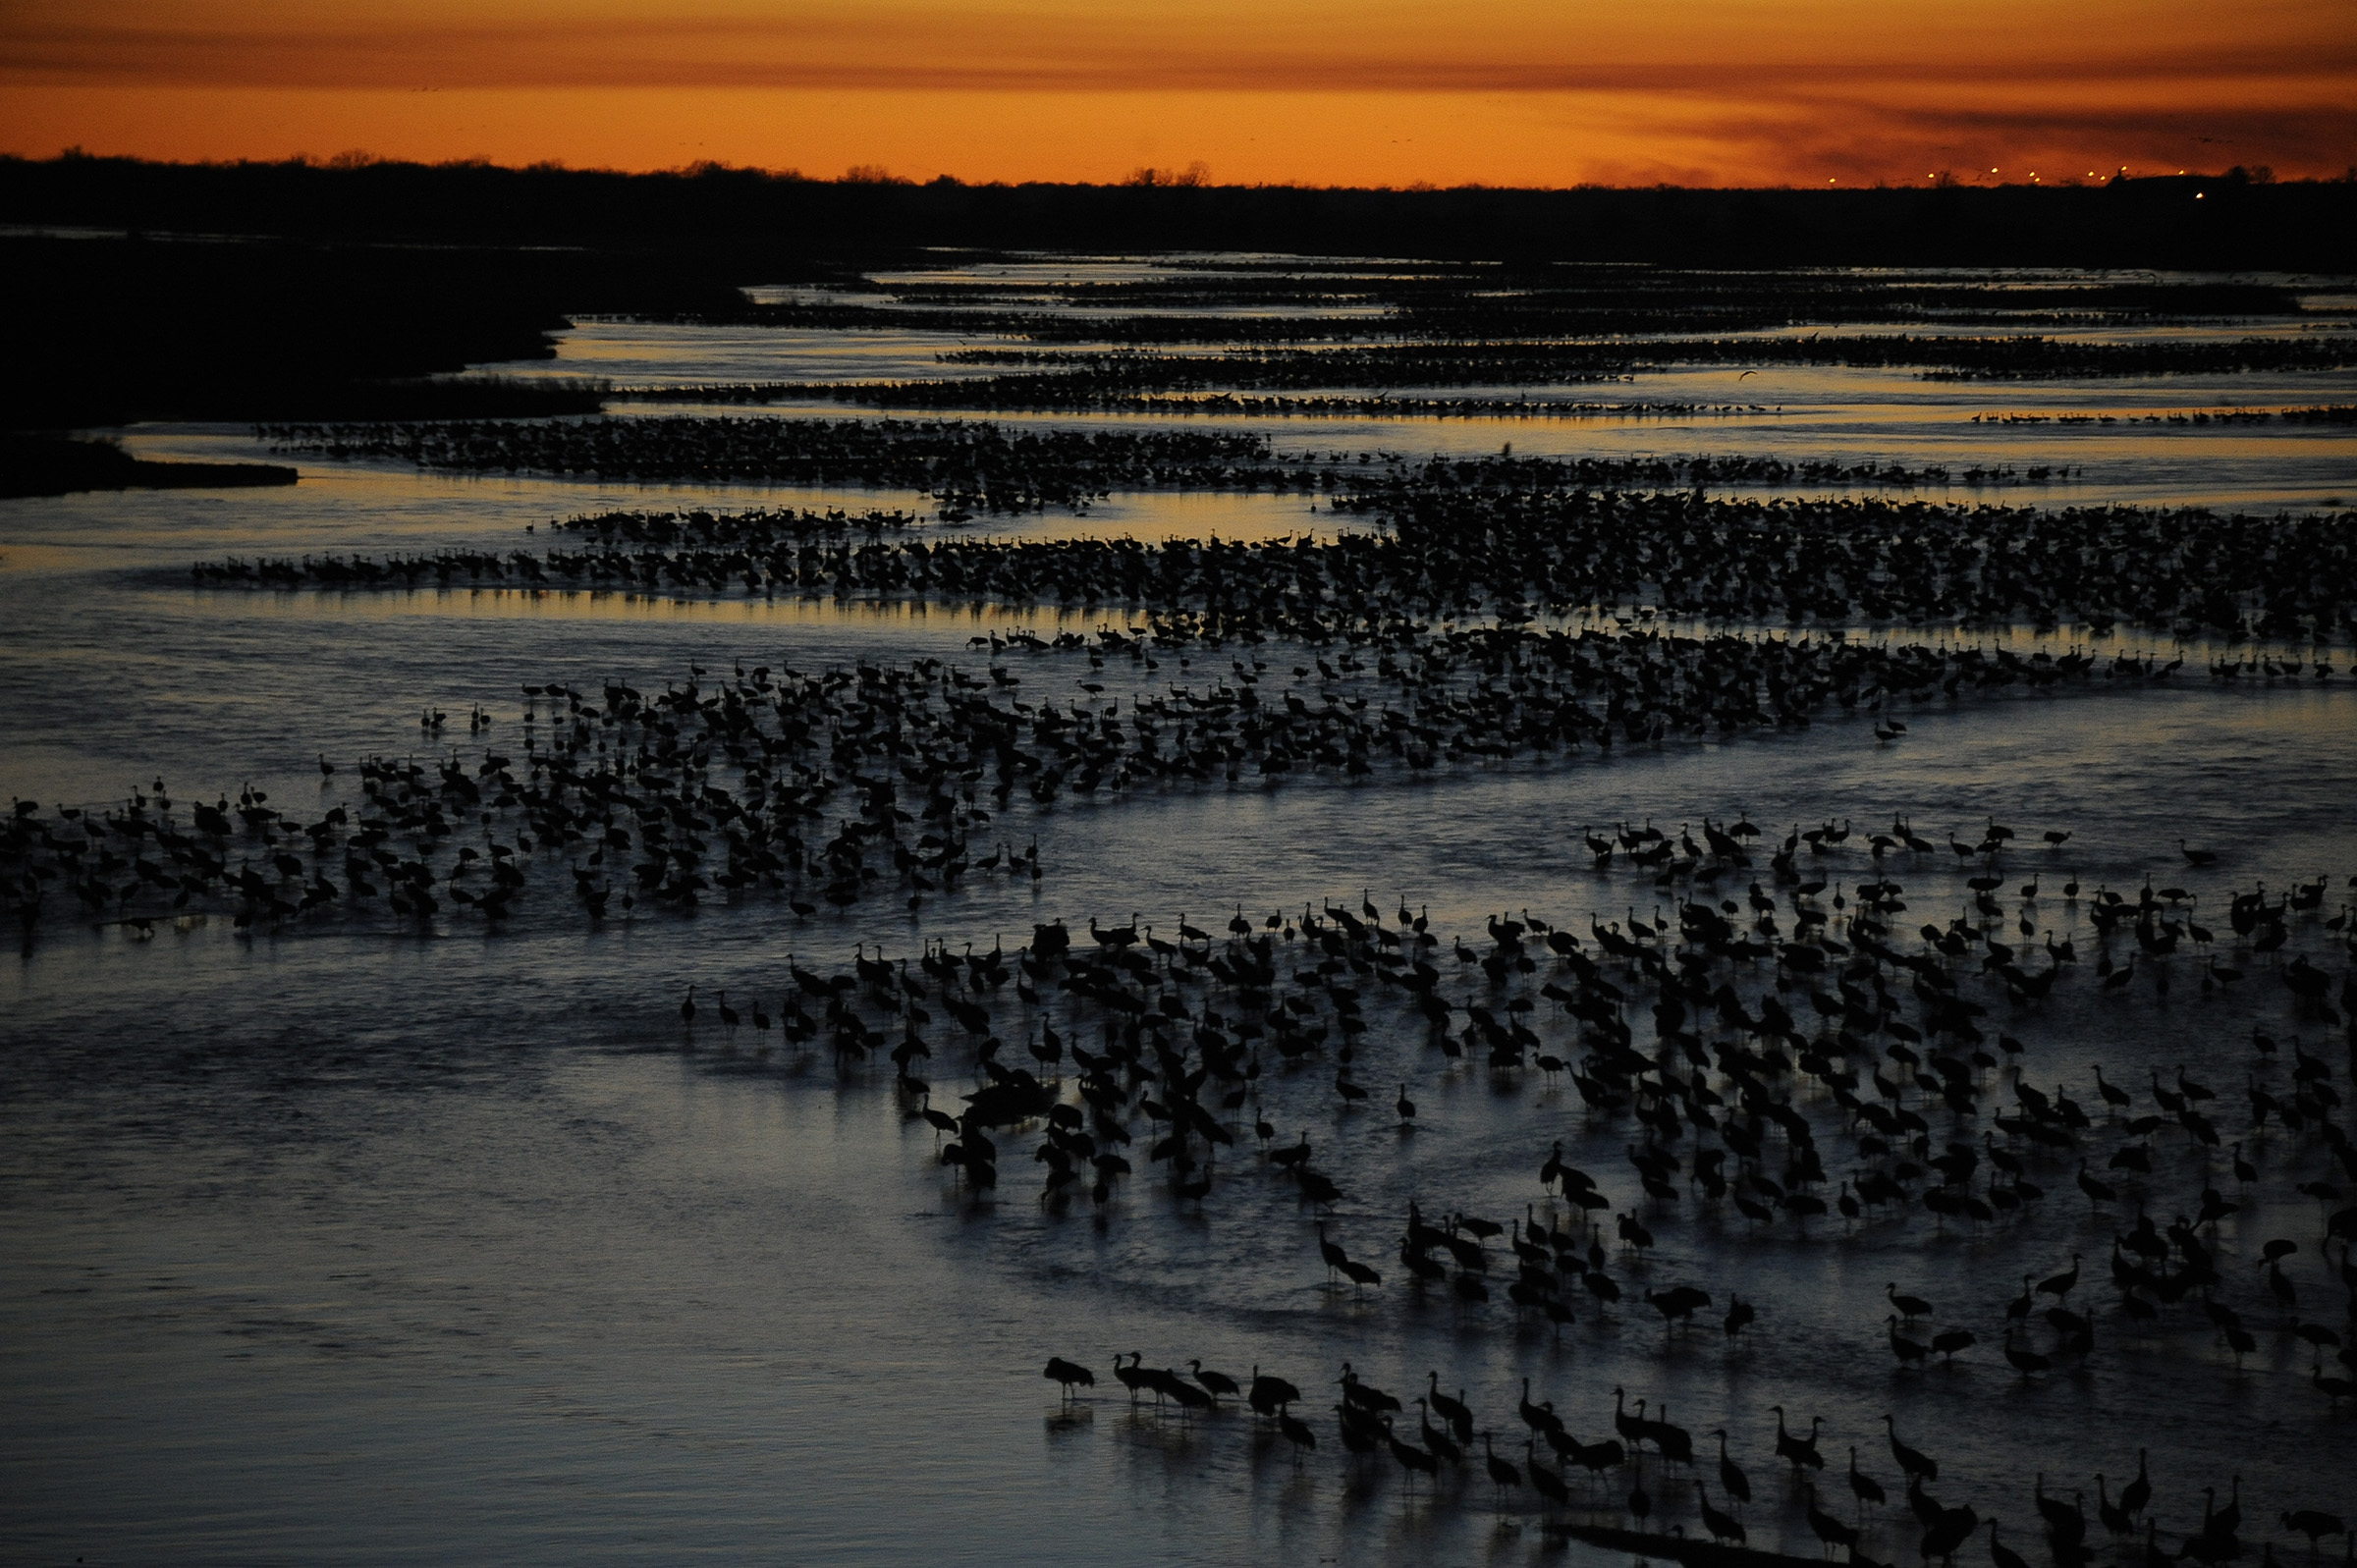 Islands of cranes roost on the braided channels of the Platte River at sunset. (Michael Forsberg)